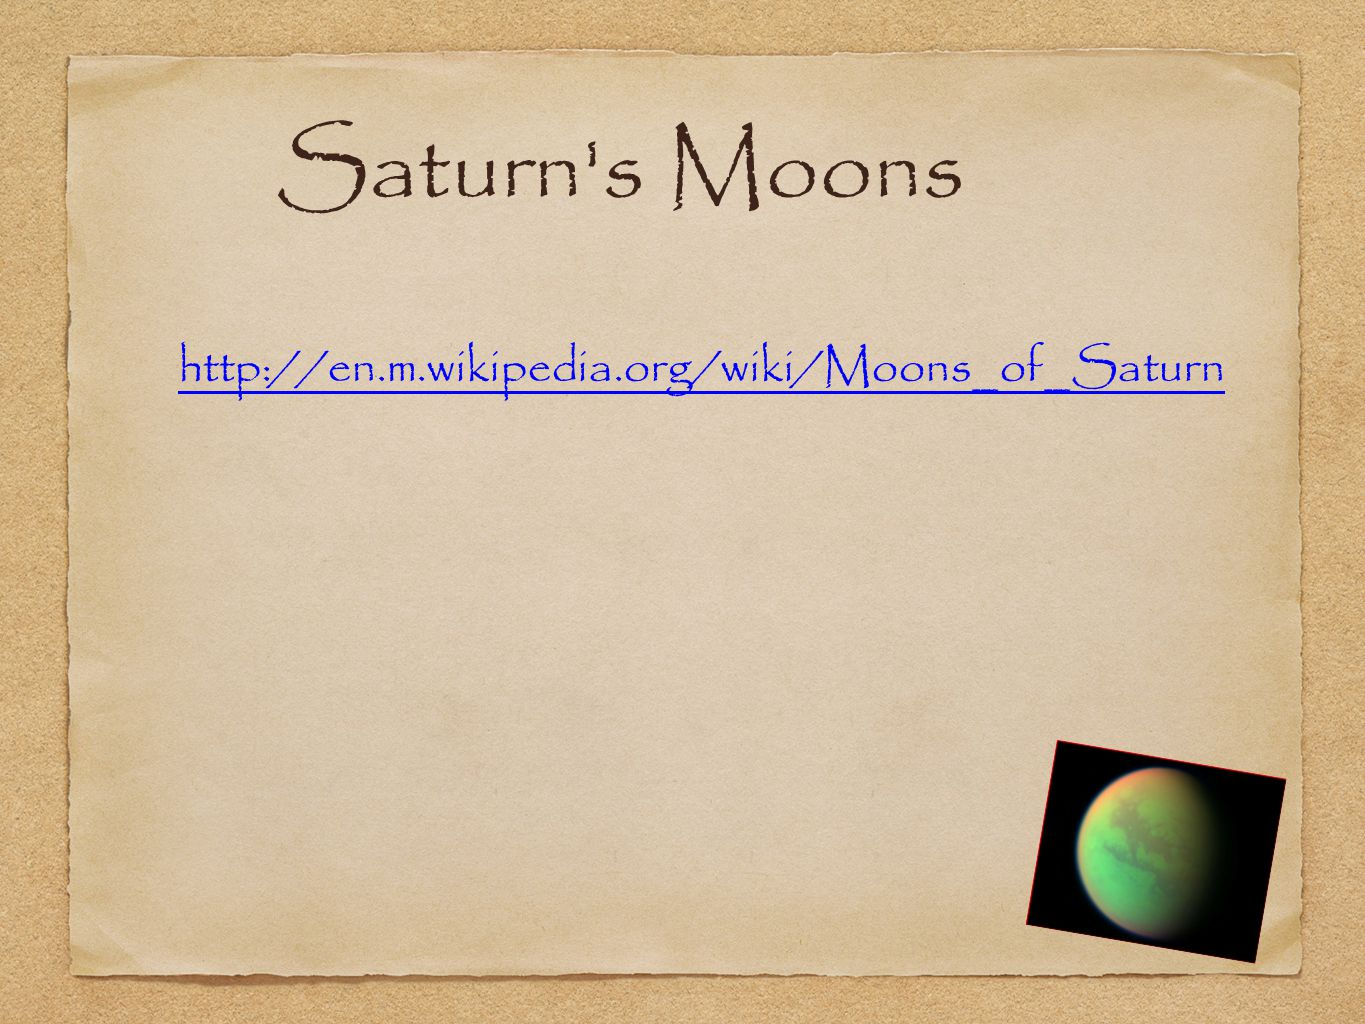 Saturn s Moons http://en.m.wikipedia.org/wiki/Moons_of_Saturn